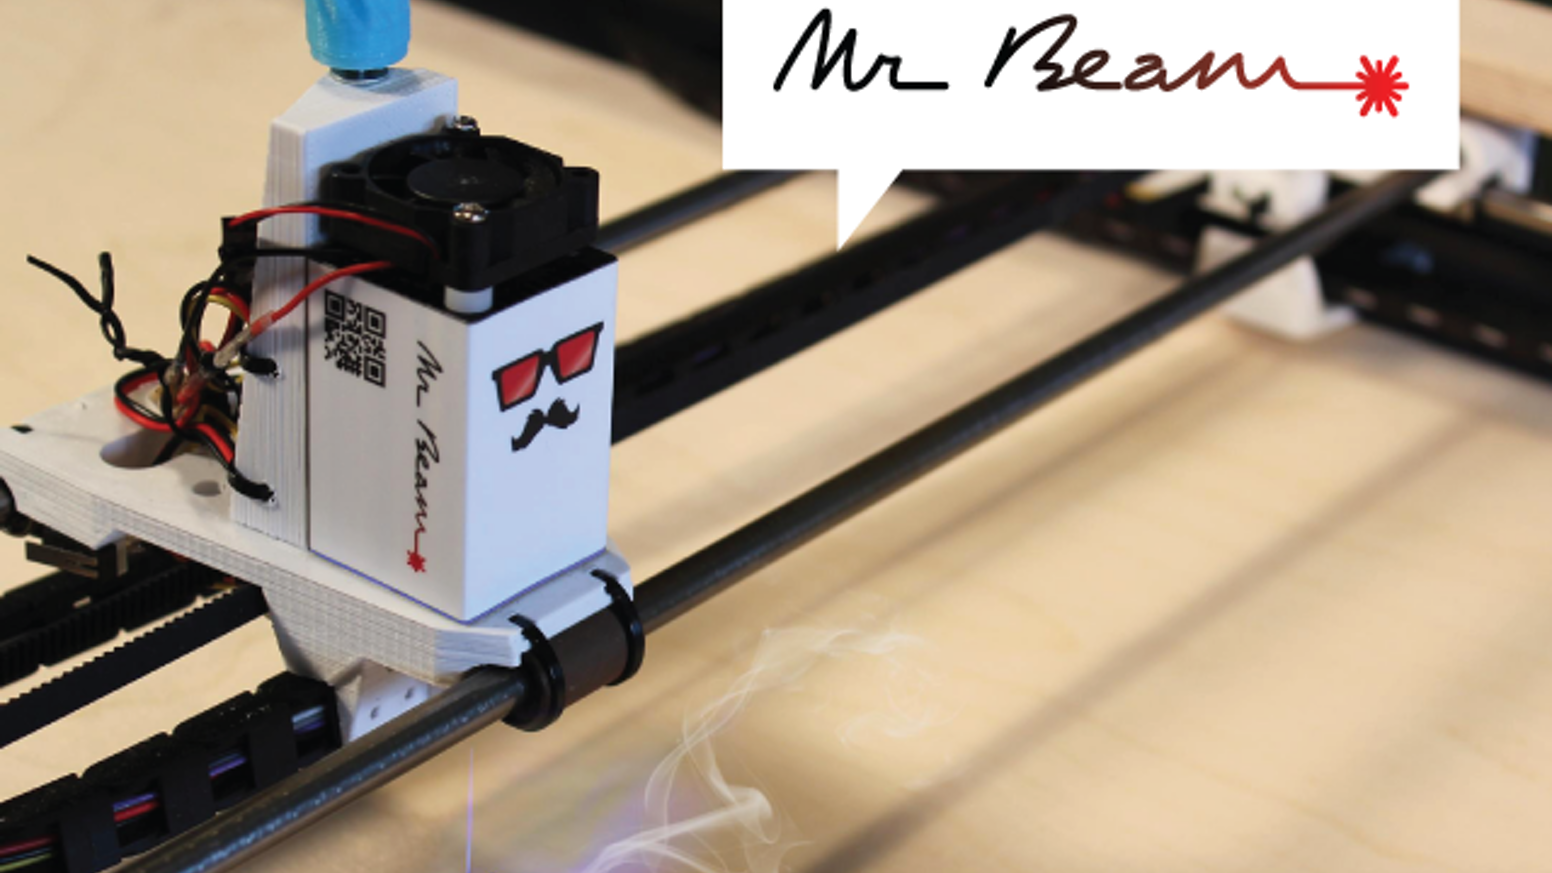 Mr Beam is an open source DIY laser cutter and engraver kit for paper, wood, plastic and other materials. It's fun and easy to use.